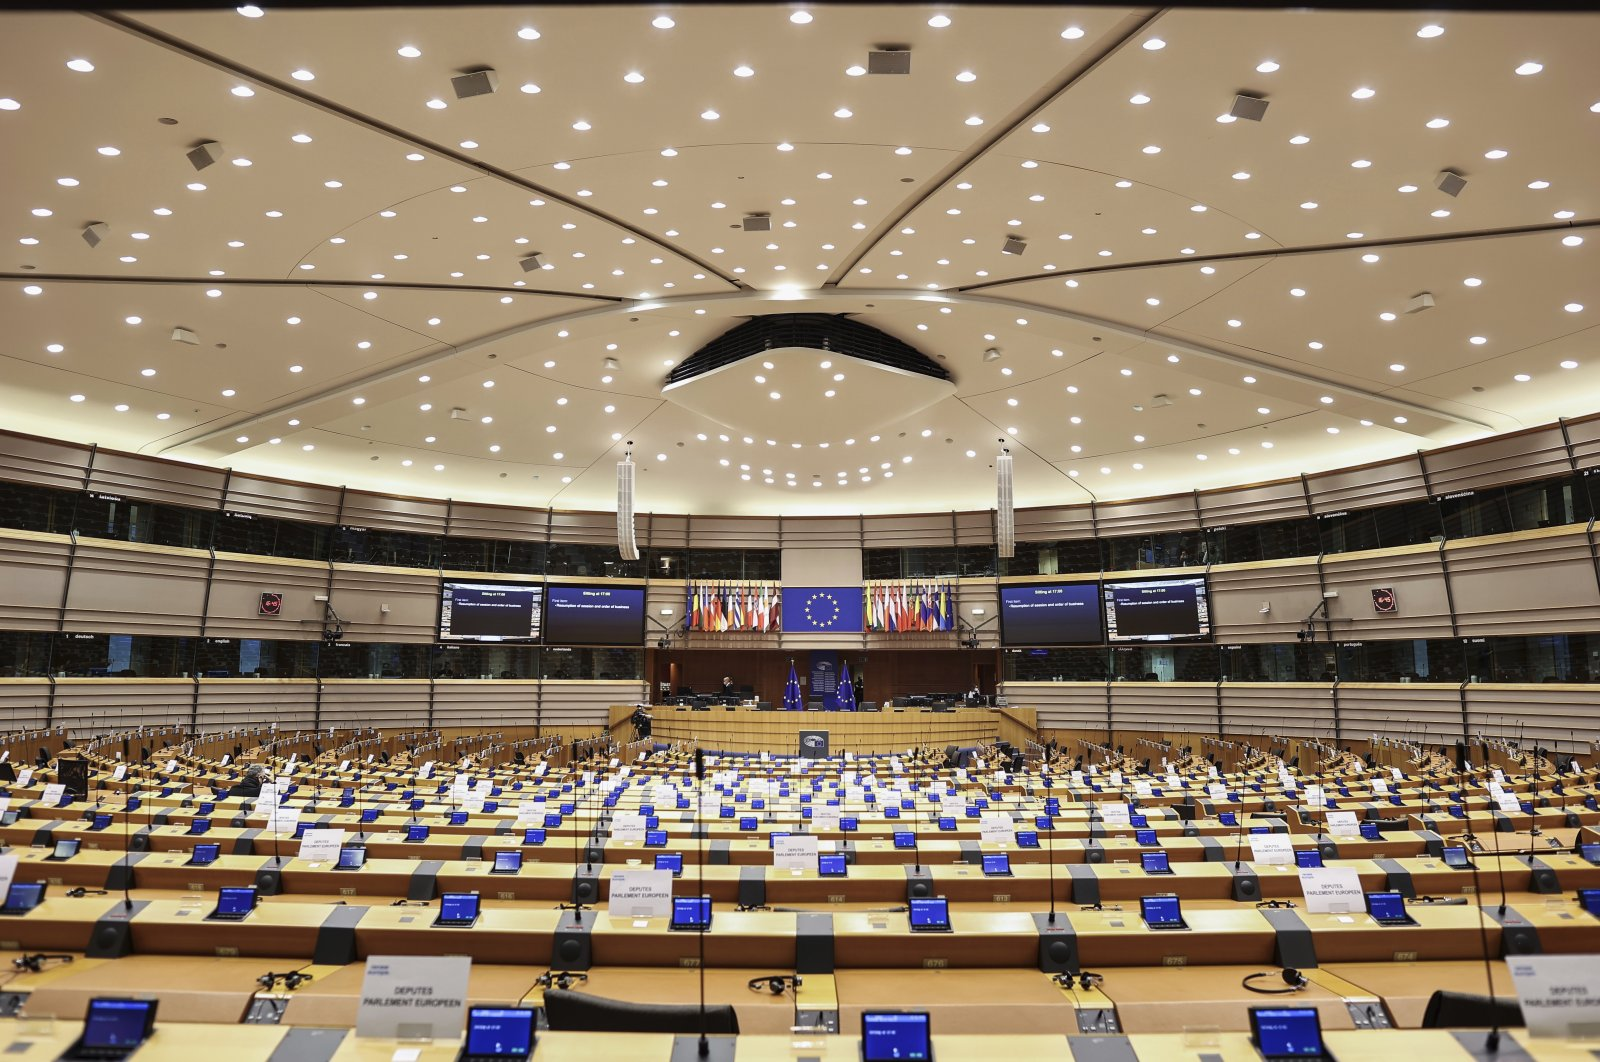 A general view of the room prior to a plenary session of the European Parliament, Brussels, Belgium, Nov. 23, 2020. (AP Photo)